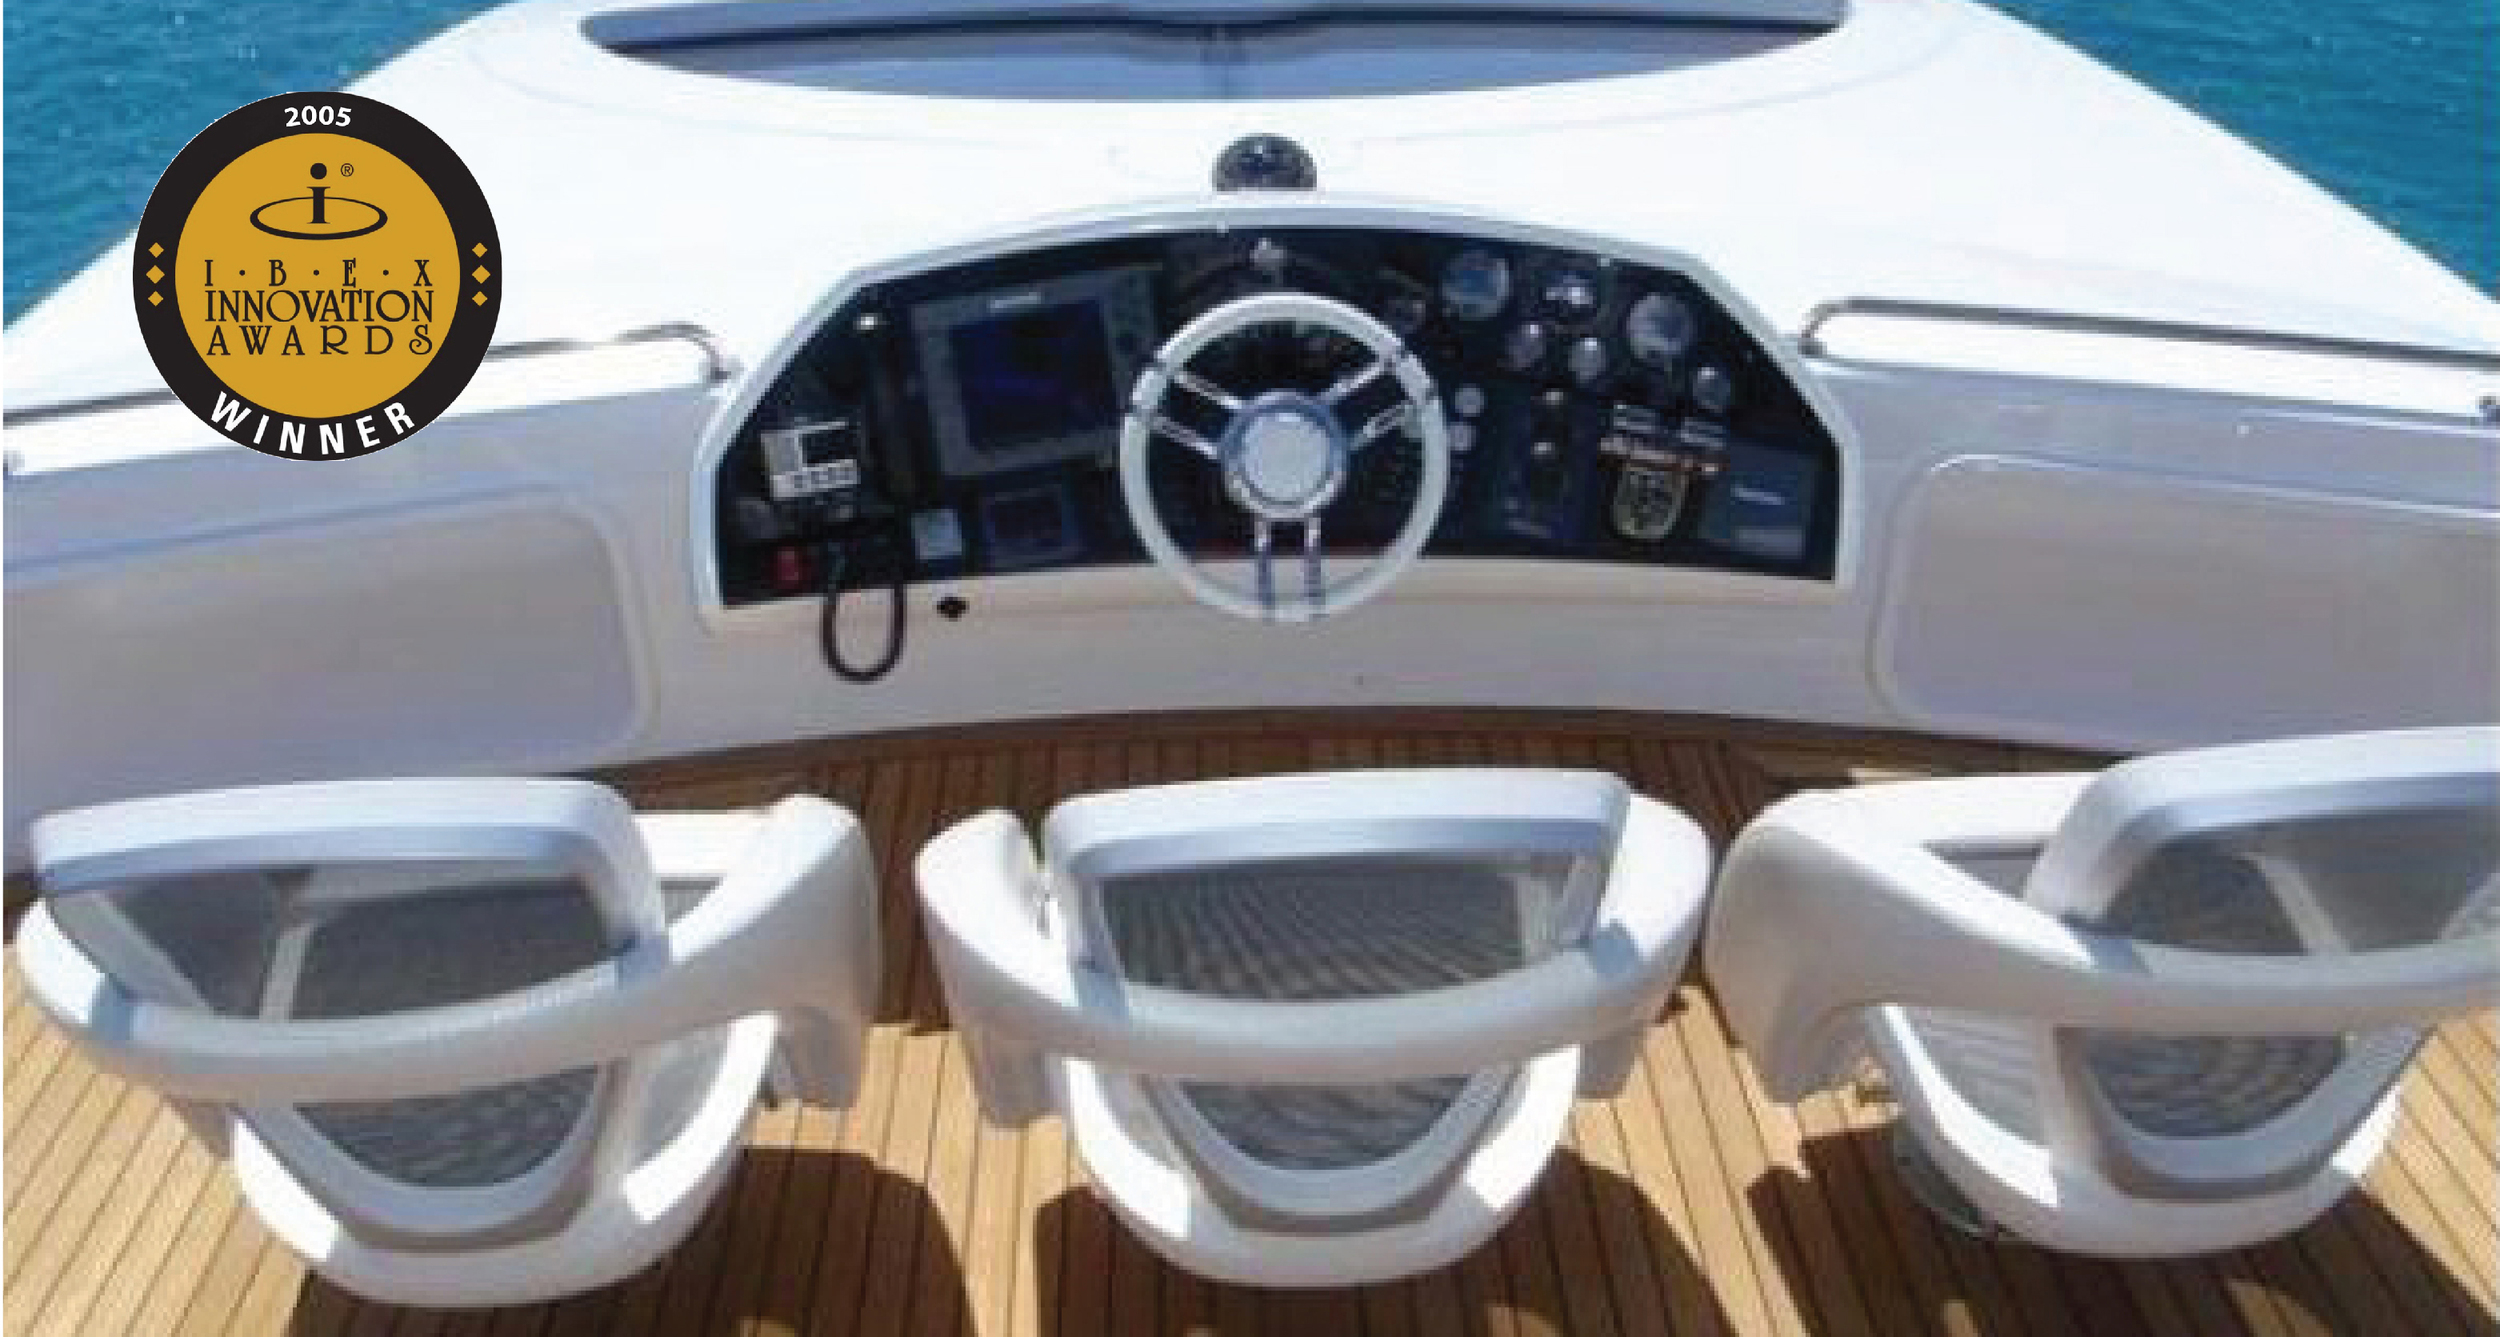 Visionair Boat Seat at Helm - Launch Innovation